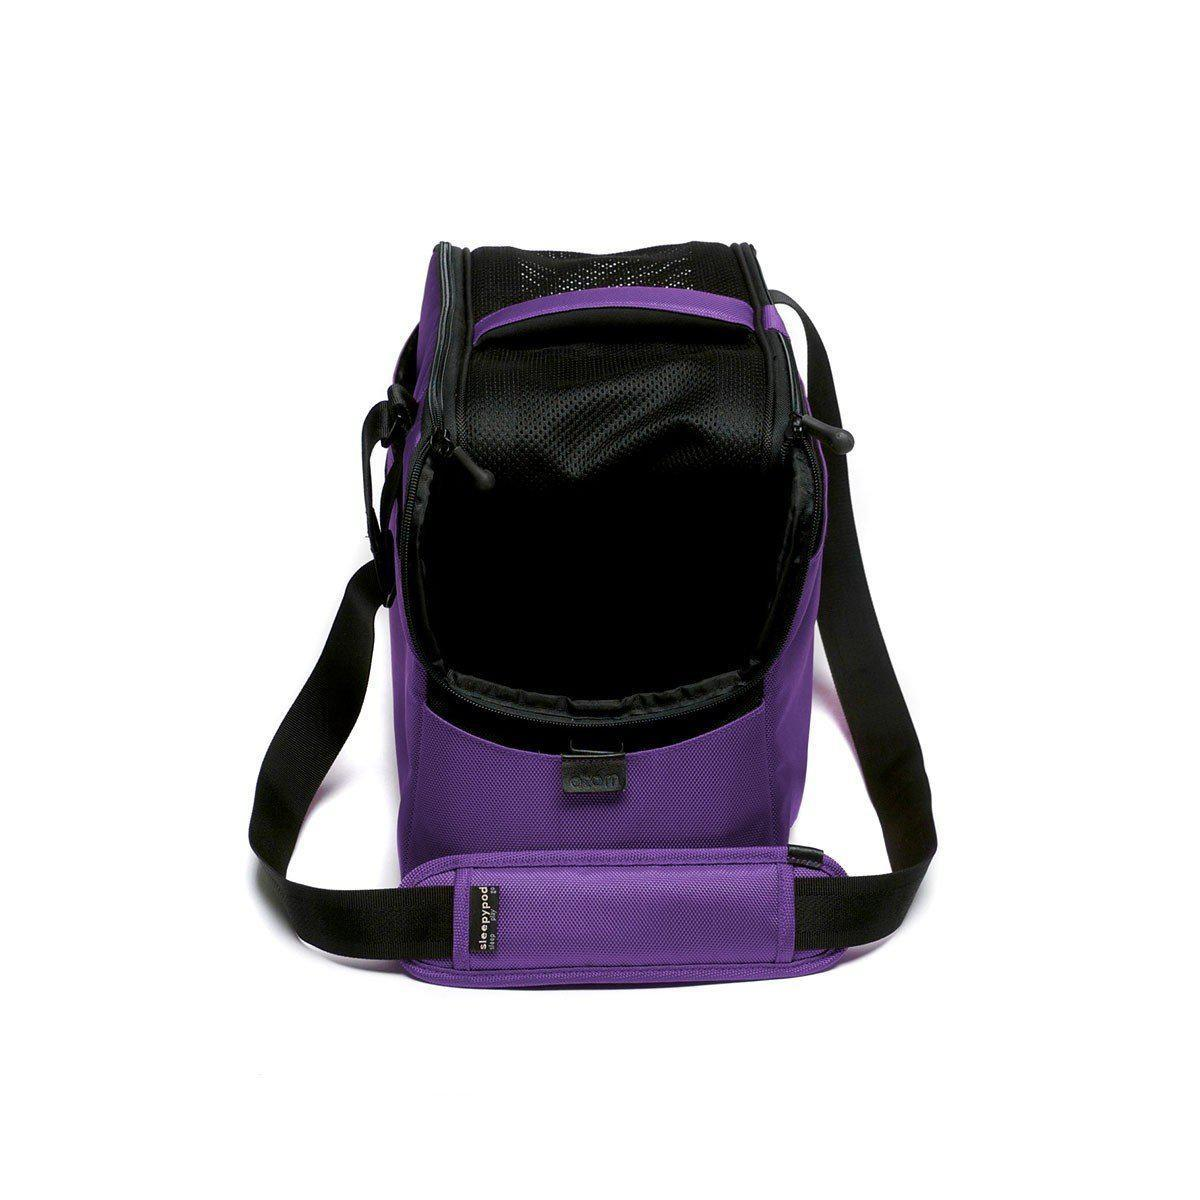 Atom Pet Carrier: Violet